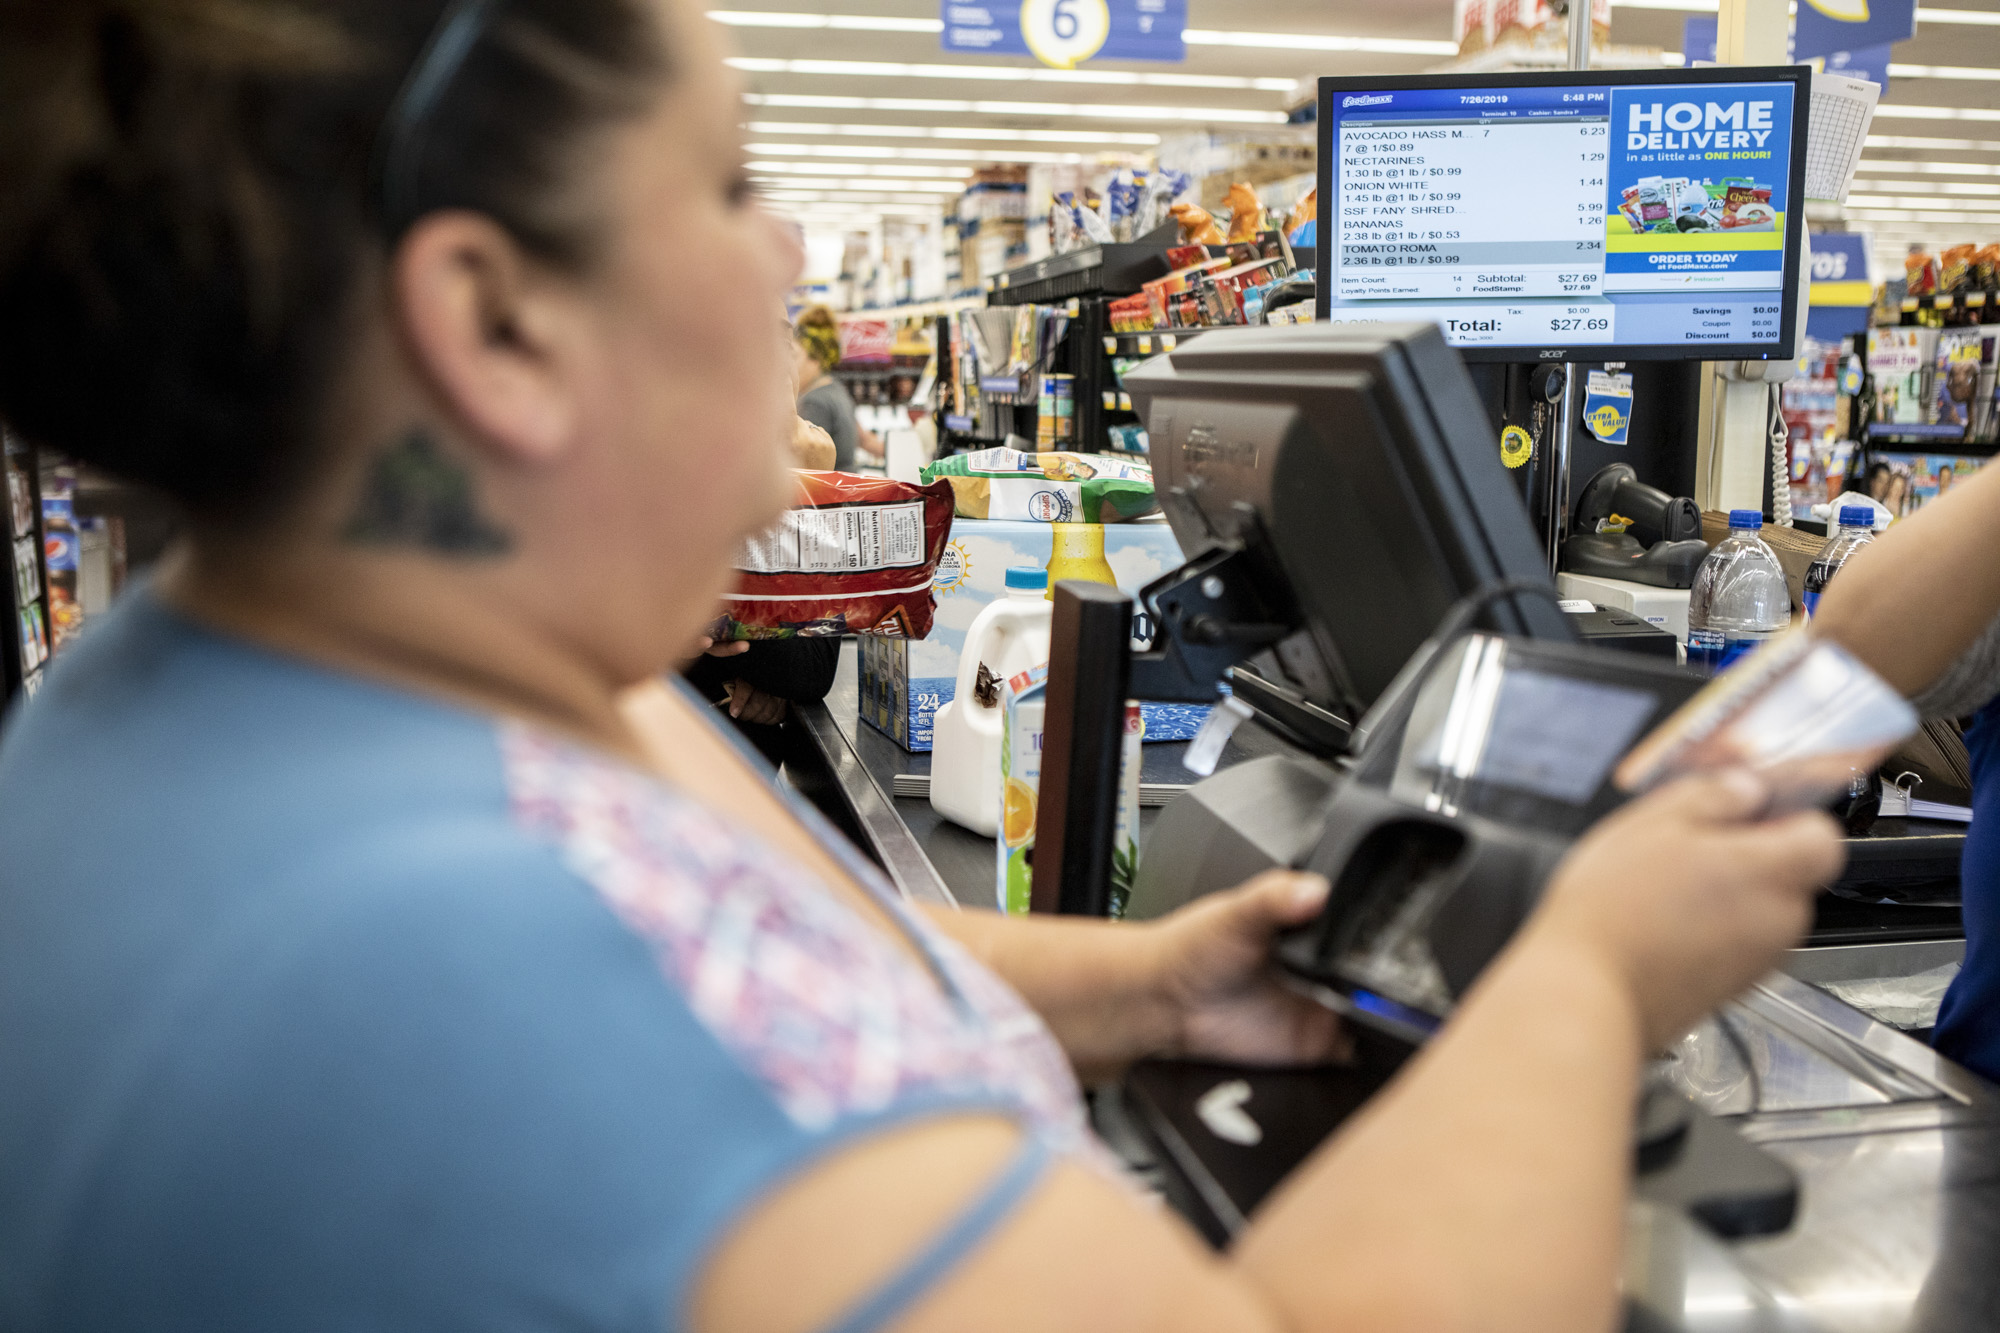 Antoinette Martinez uses CalFresh to pay for her groceries at FoodMaxx on July 26, 2019. The food she purchases today is expected to last her and her five-year-old for at least a week. Photo by Anne Wernikoff/CalMatters